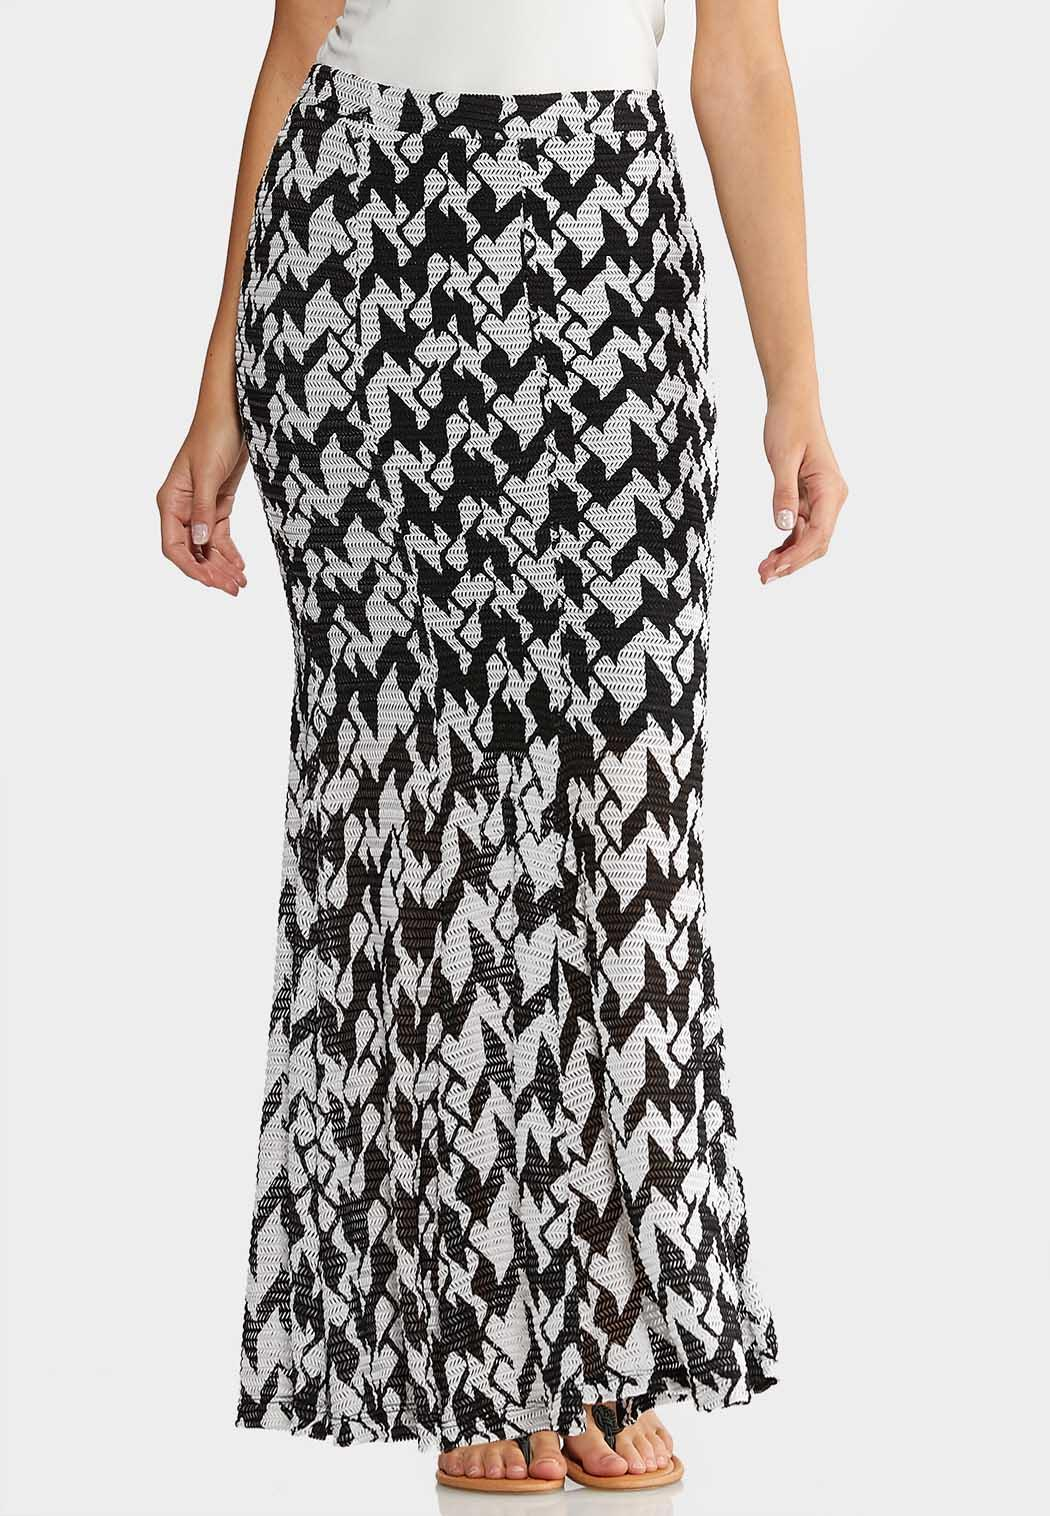 Plus Size Bold Houndstooth Skirt Maxi Cato Fashions